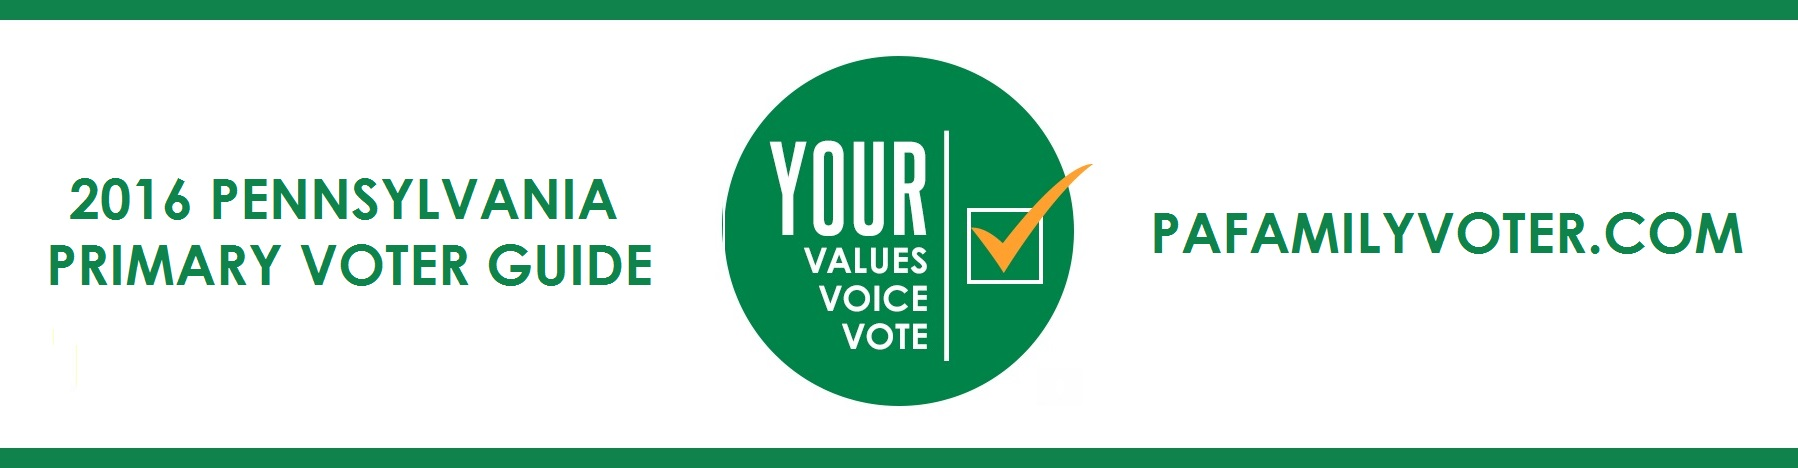 Your Values. Your Voice. Your Vote. PaFamilyVoter.com Banner